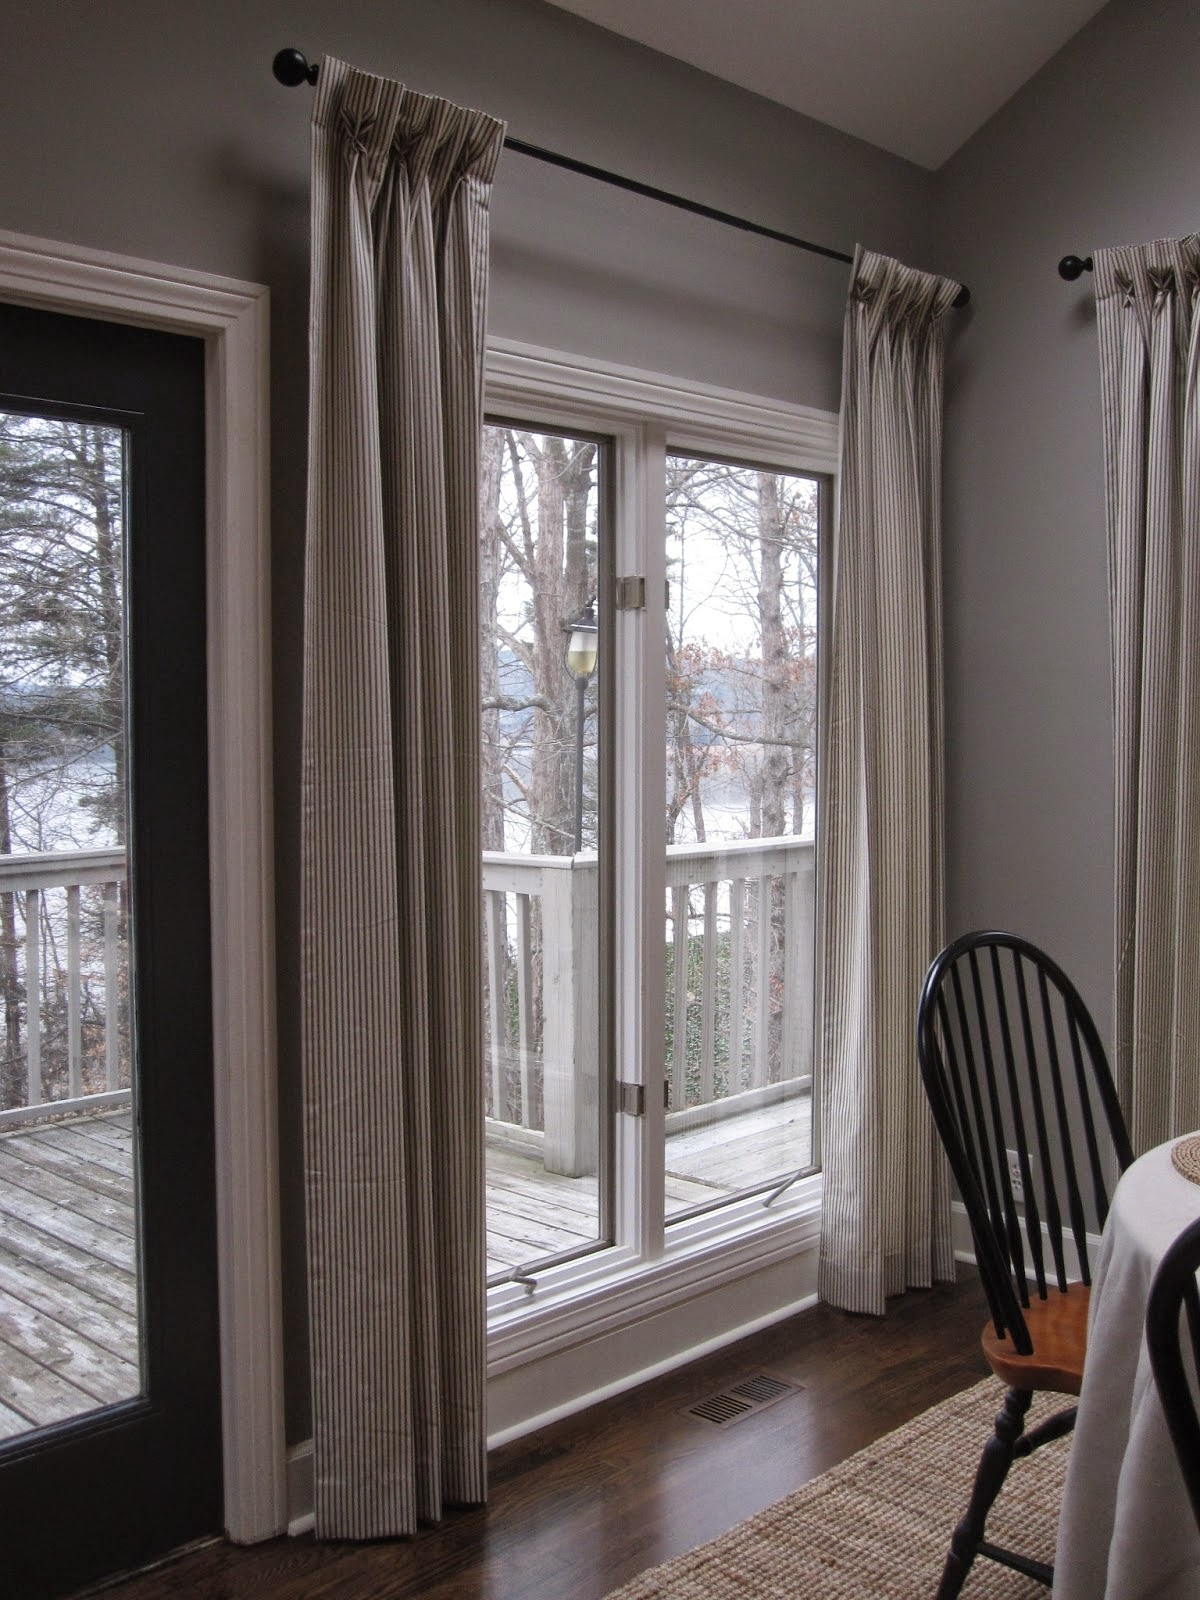 Window Treatments For French Doors  Home Design Ideas and Inspiration Onlycilyblogspotcom